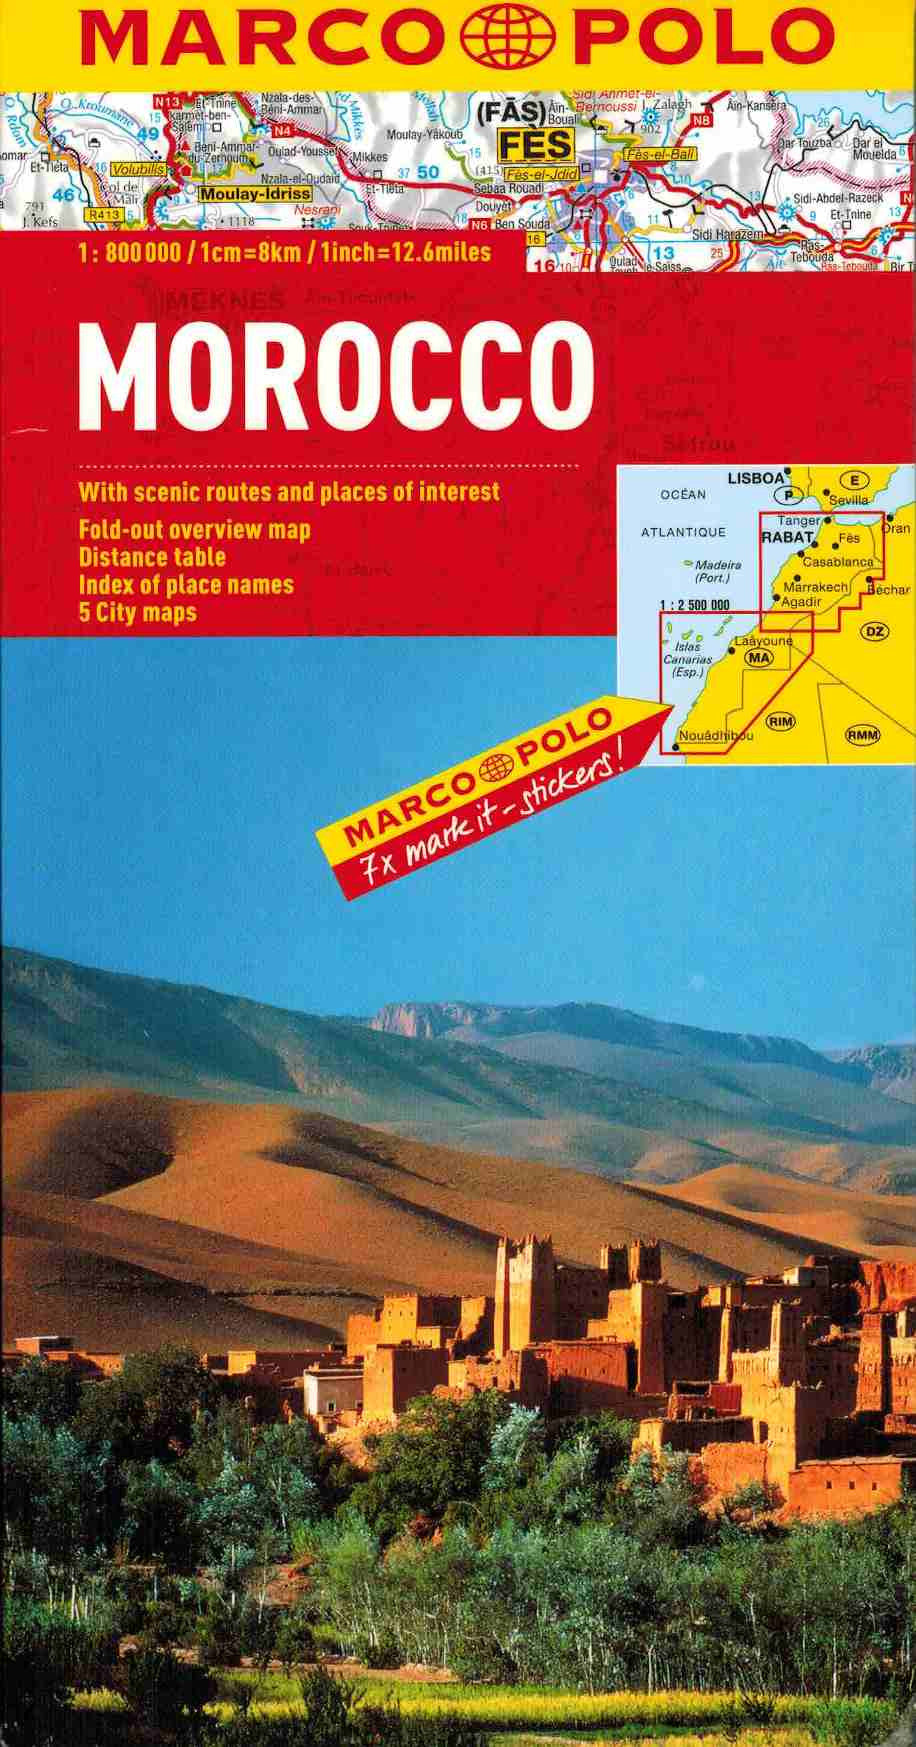 Marco Polo Morocco Map IBSN:9783829767316 Atlas, Altases, Map, Mapping, Locator map